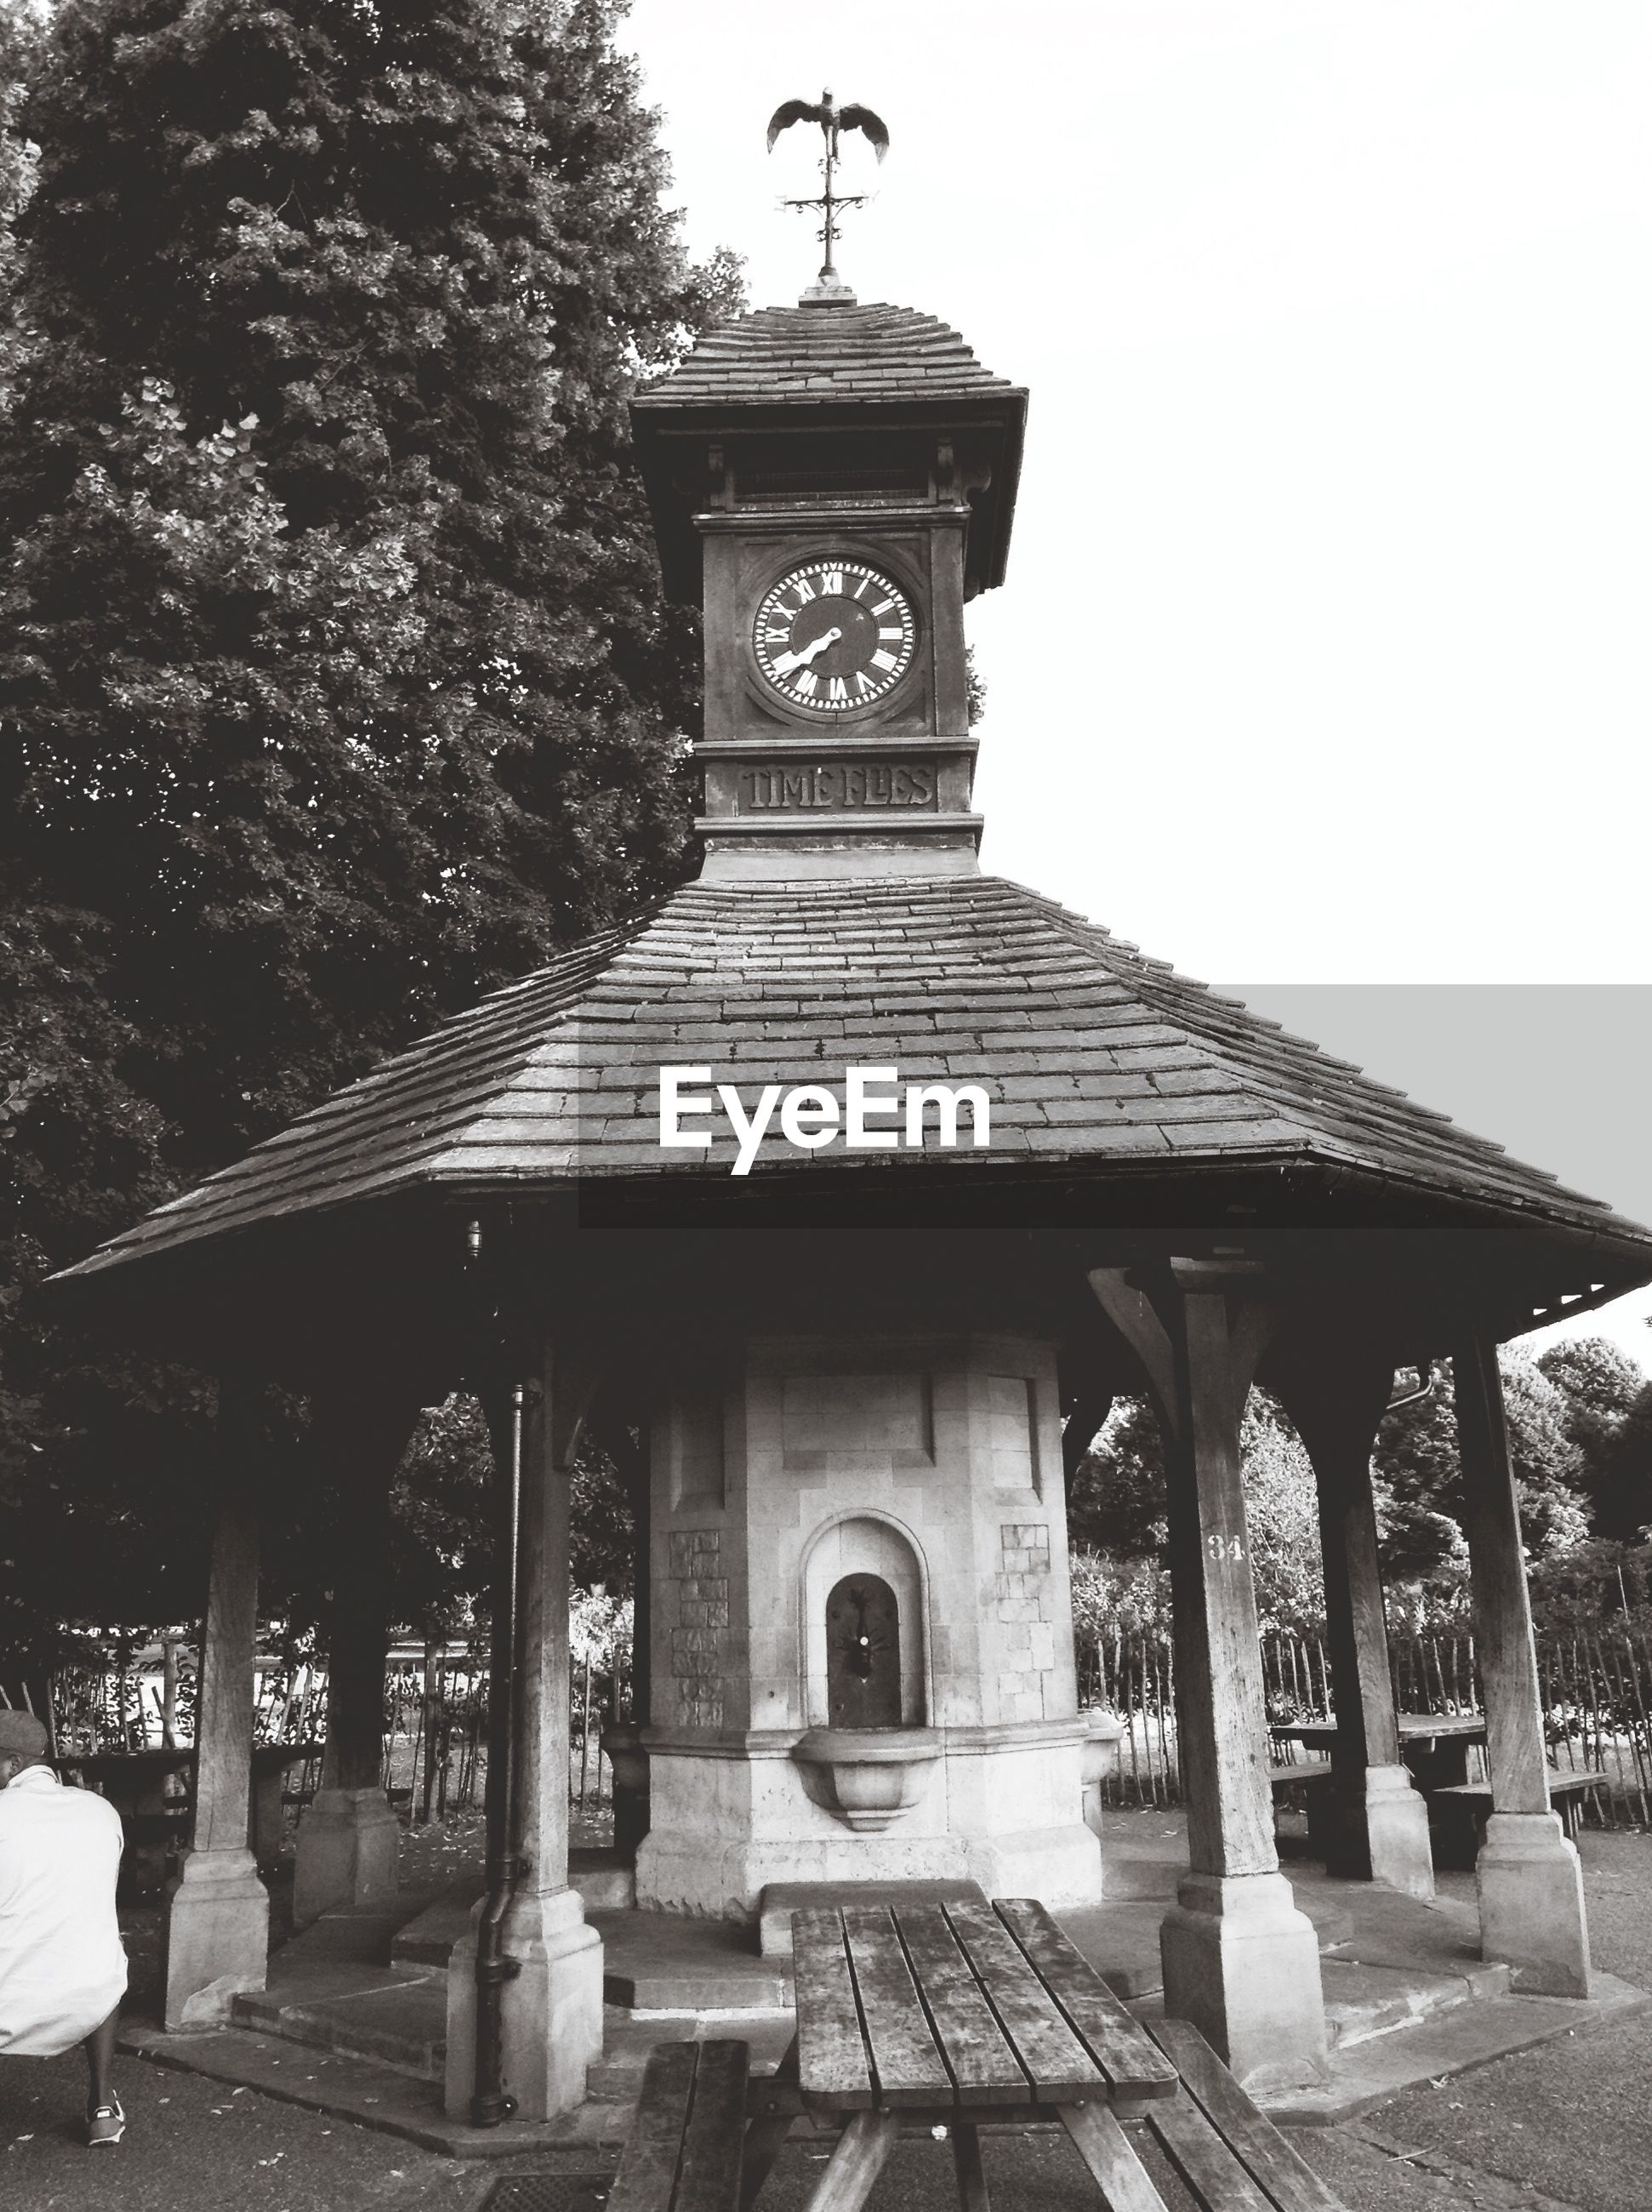 Wooden table next arbor with small clock tower on top